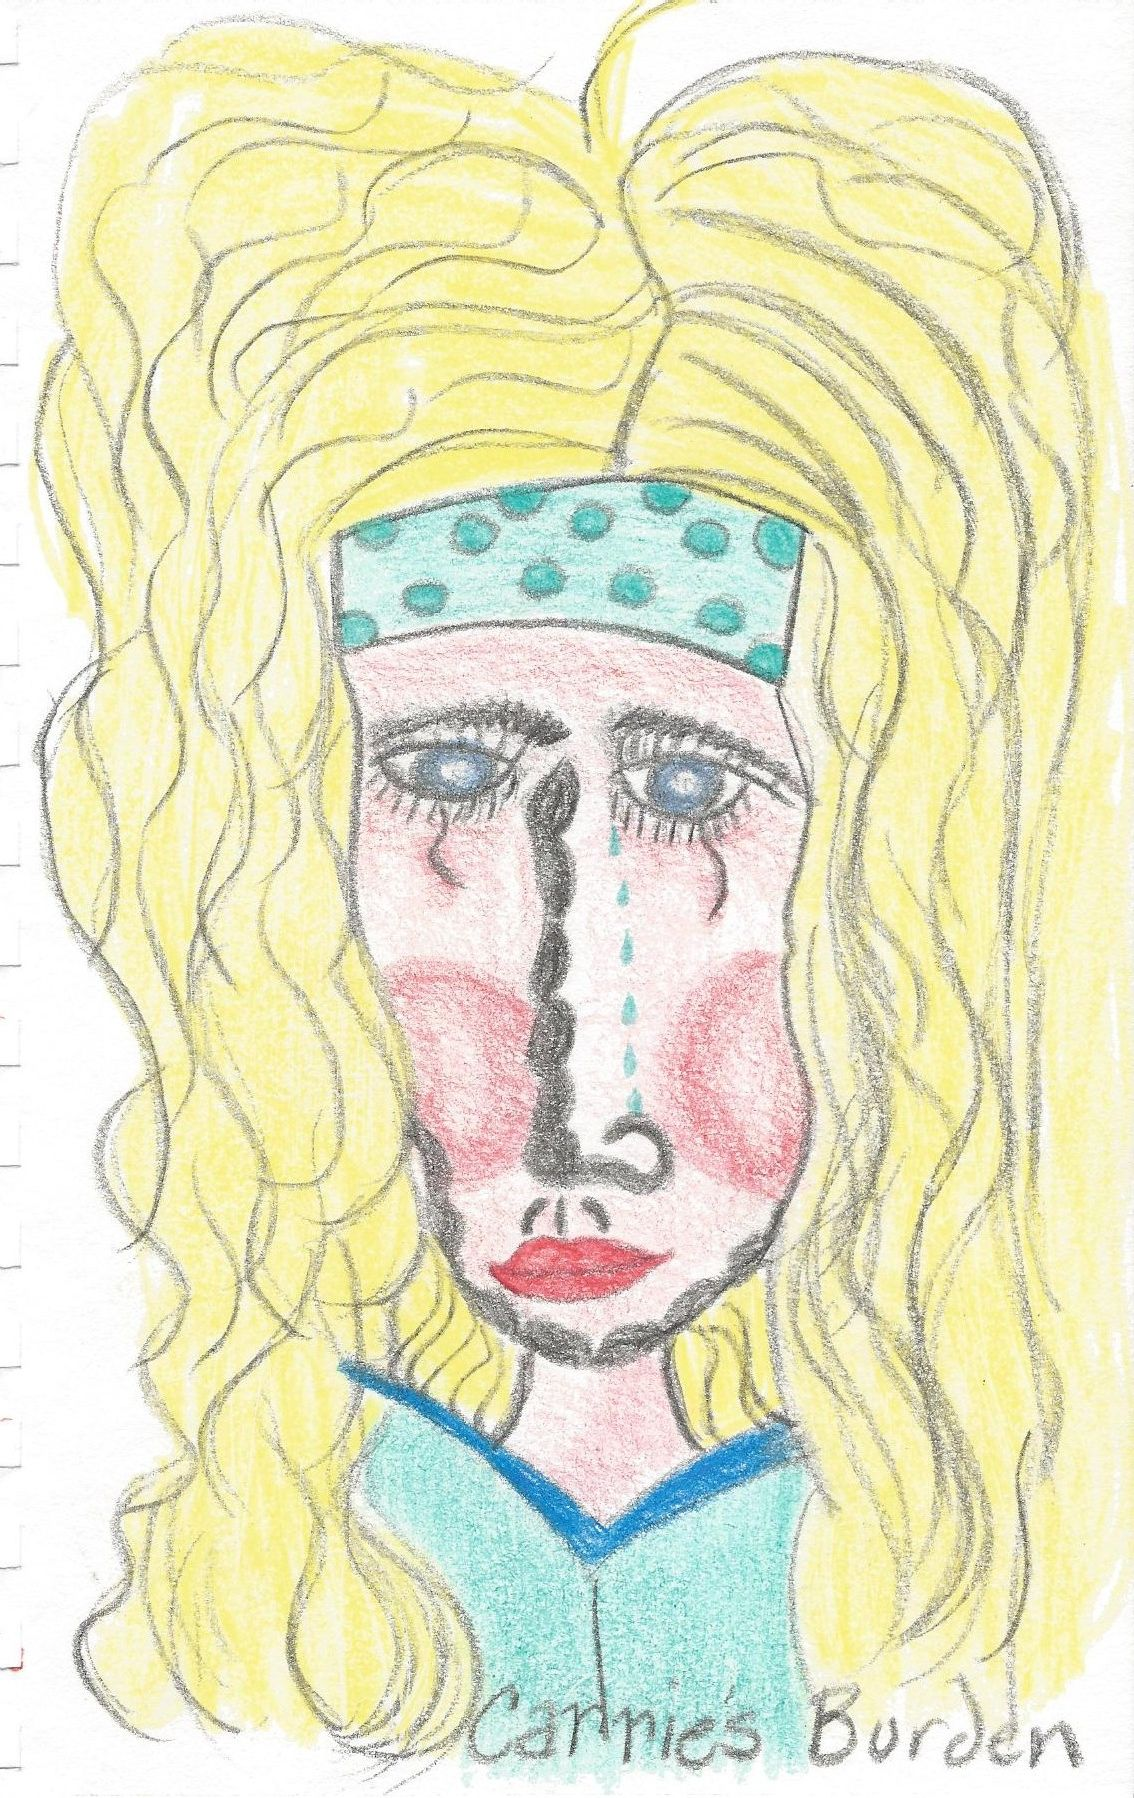 -most of us have the burden of a facial feature we don't like.